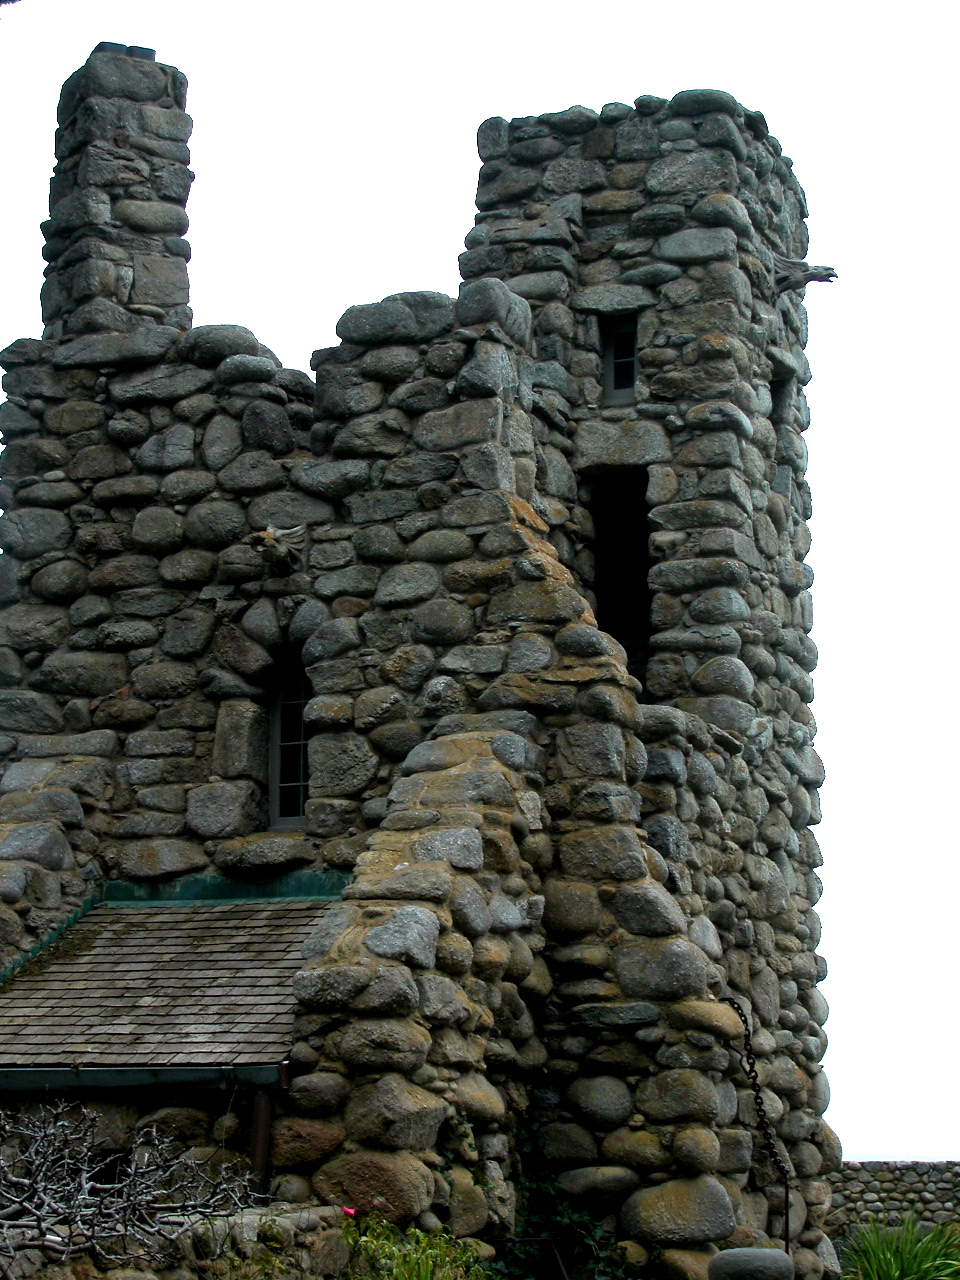 Robinson_Jeffers_Hawk_Tower,_Tor_House,_Carmel,_CA_2008_Photo_by_Celeste_Davison